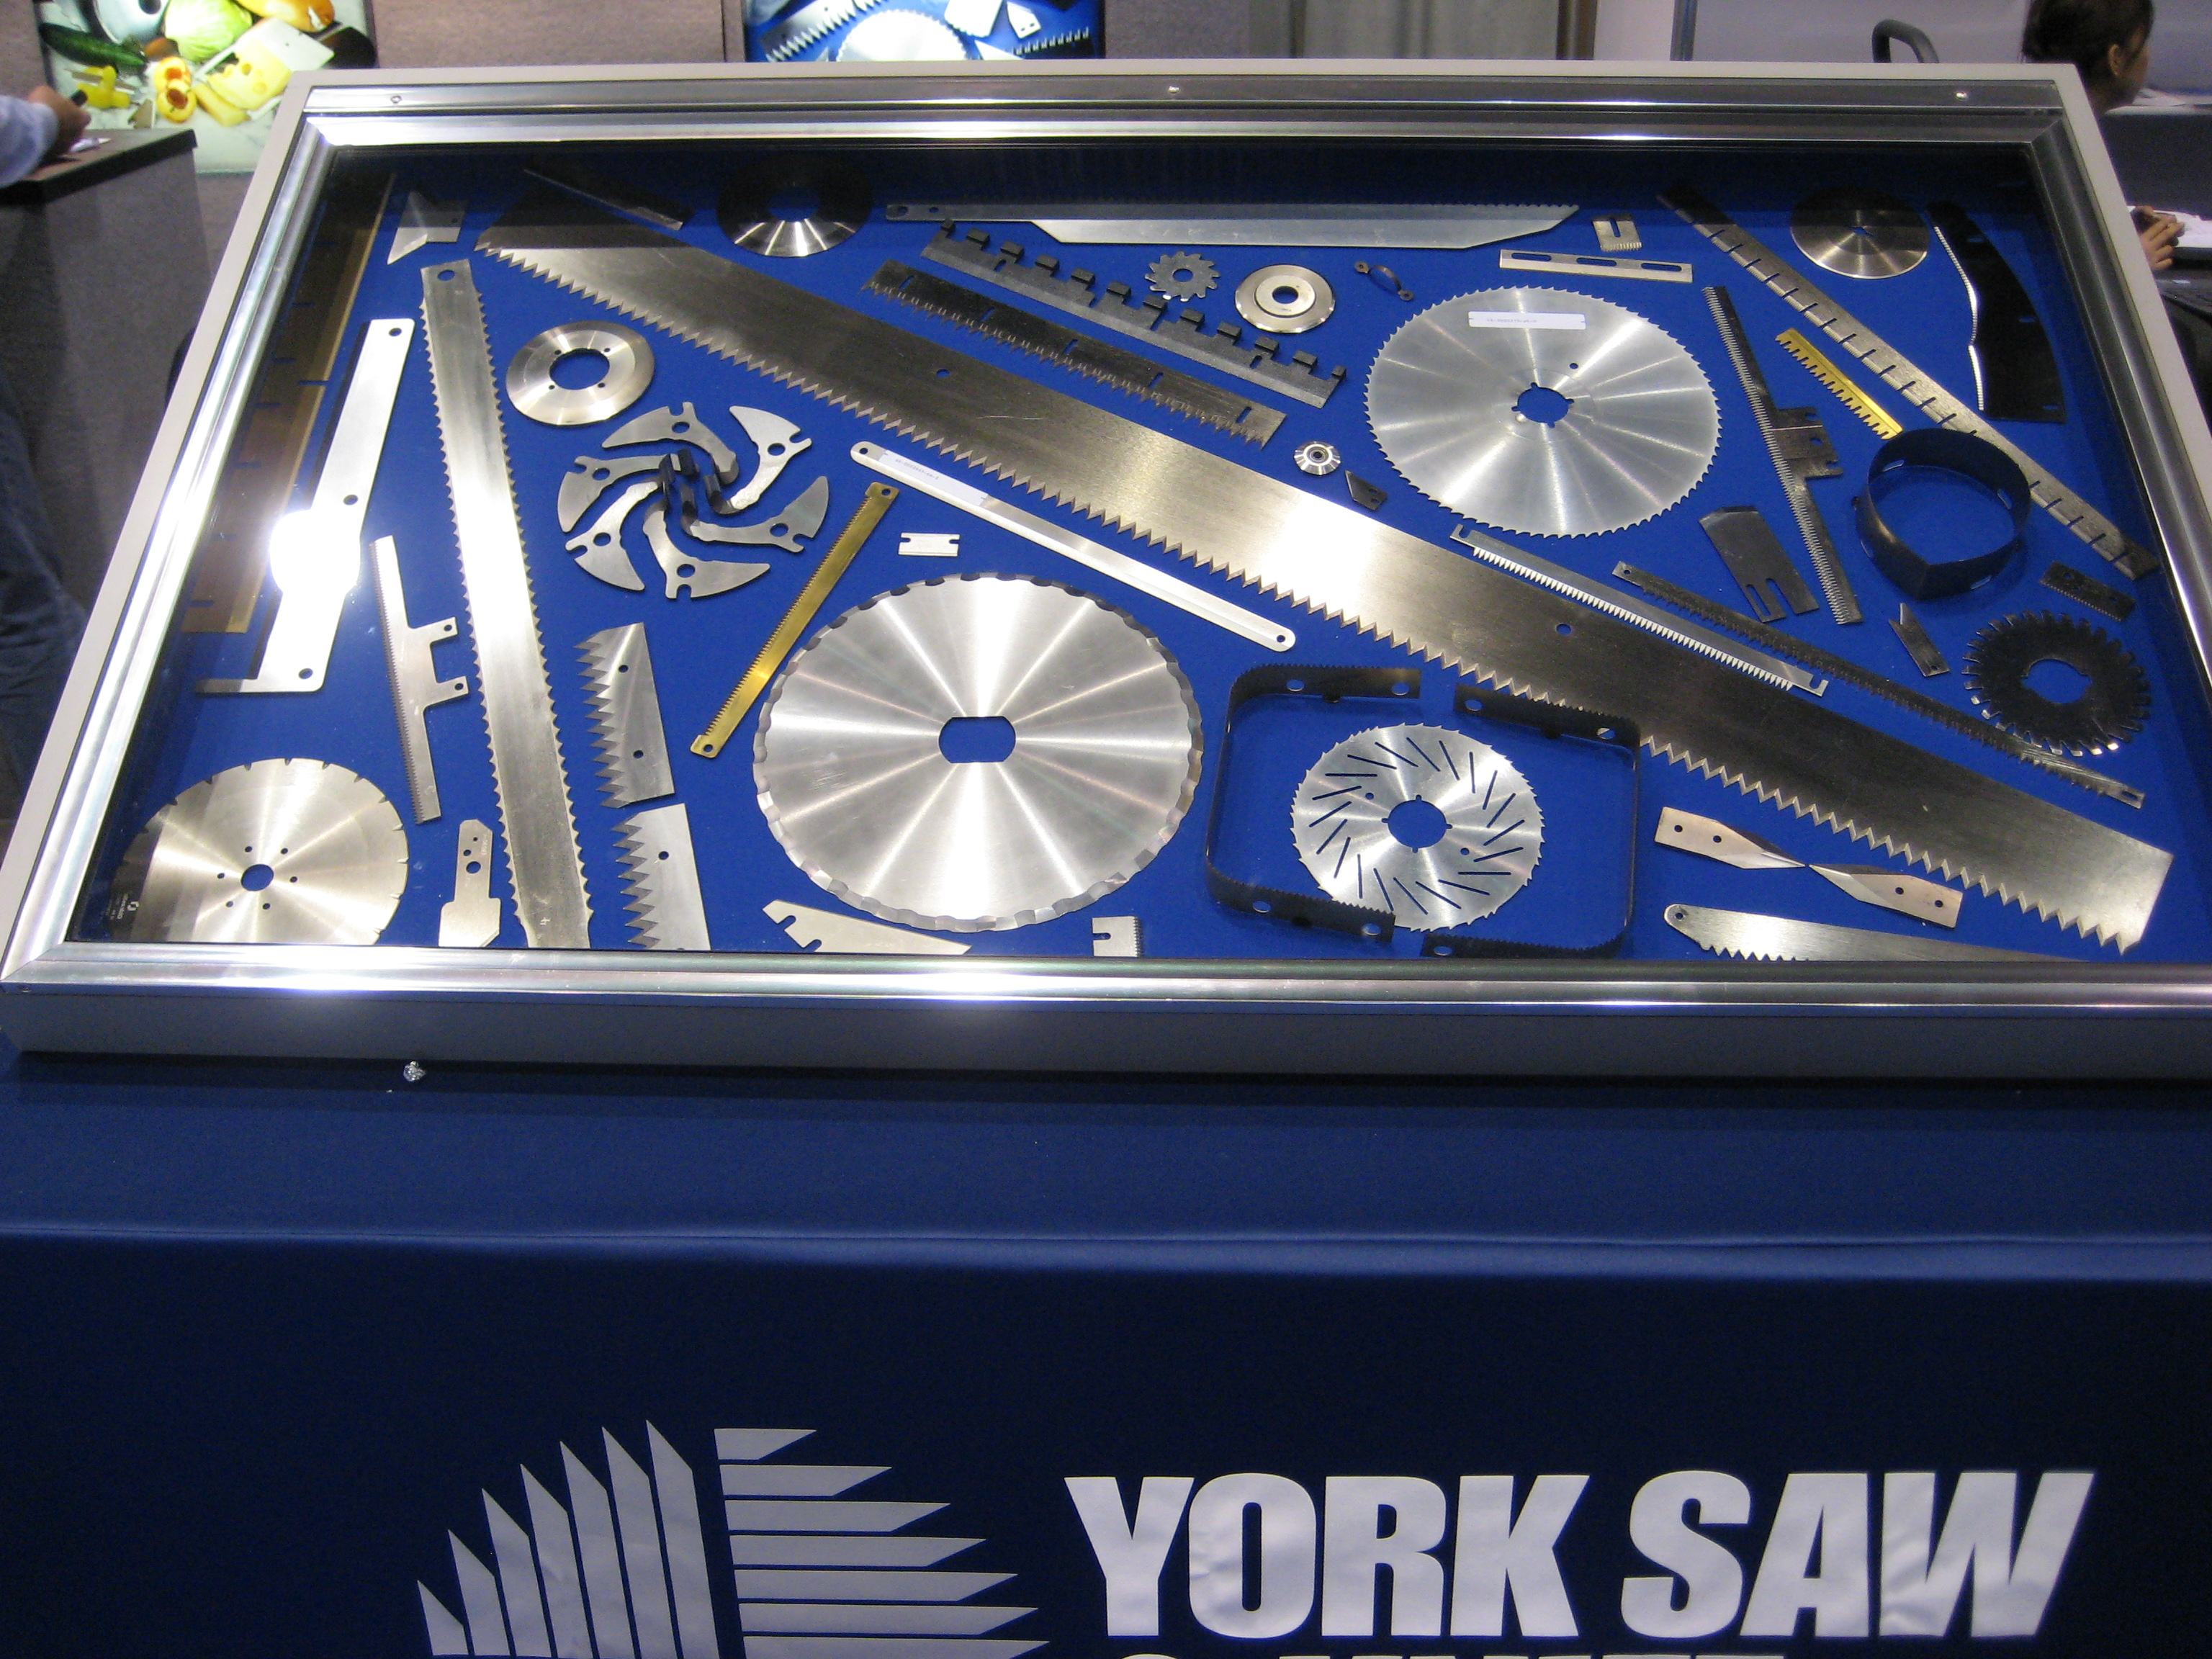 York Saw at Pack Expo